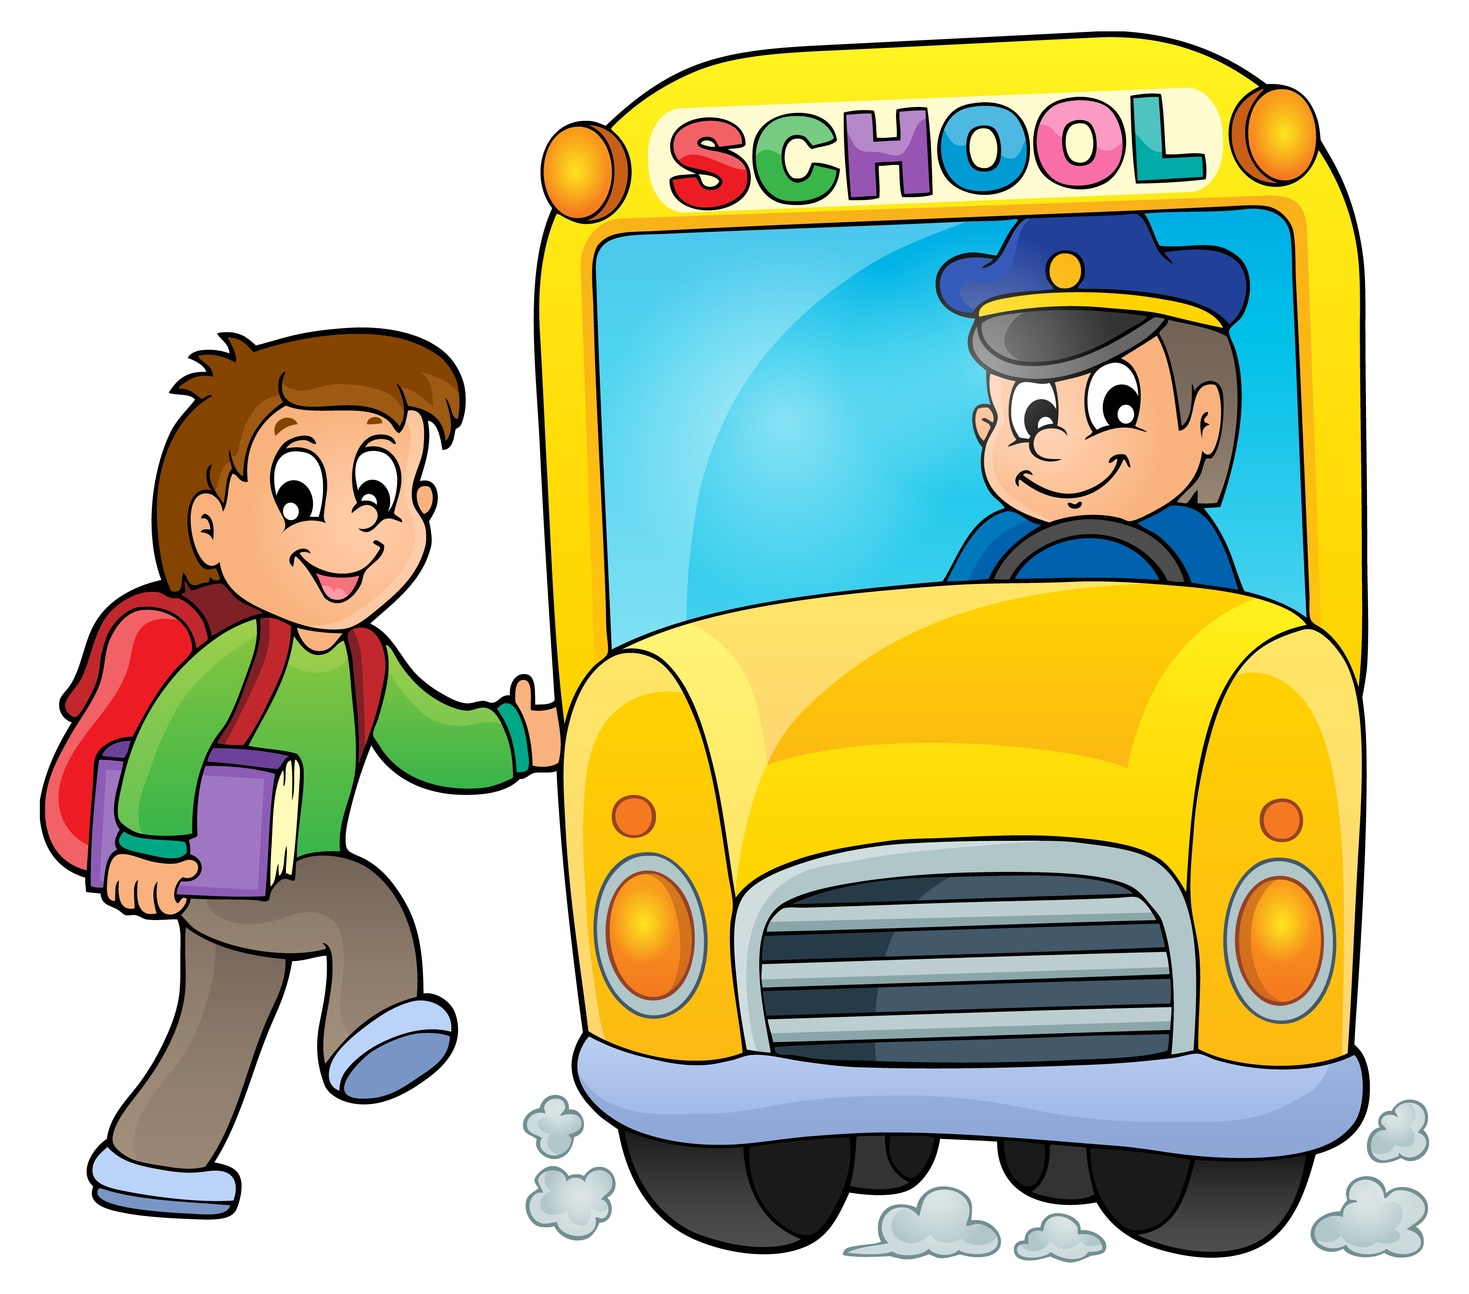 Bus driver clipart royalty free download image of school bus driver clipart - WikiClipArt royalty free download